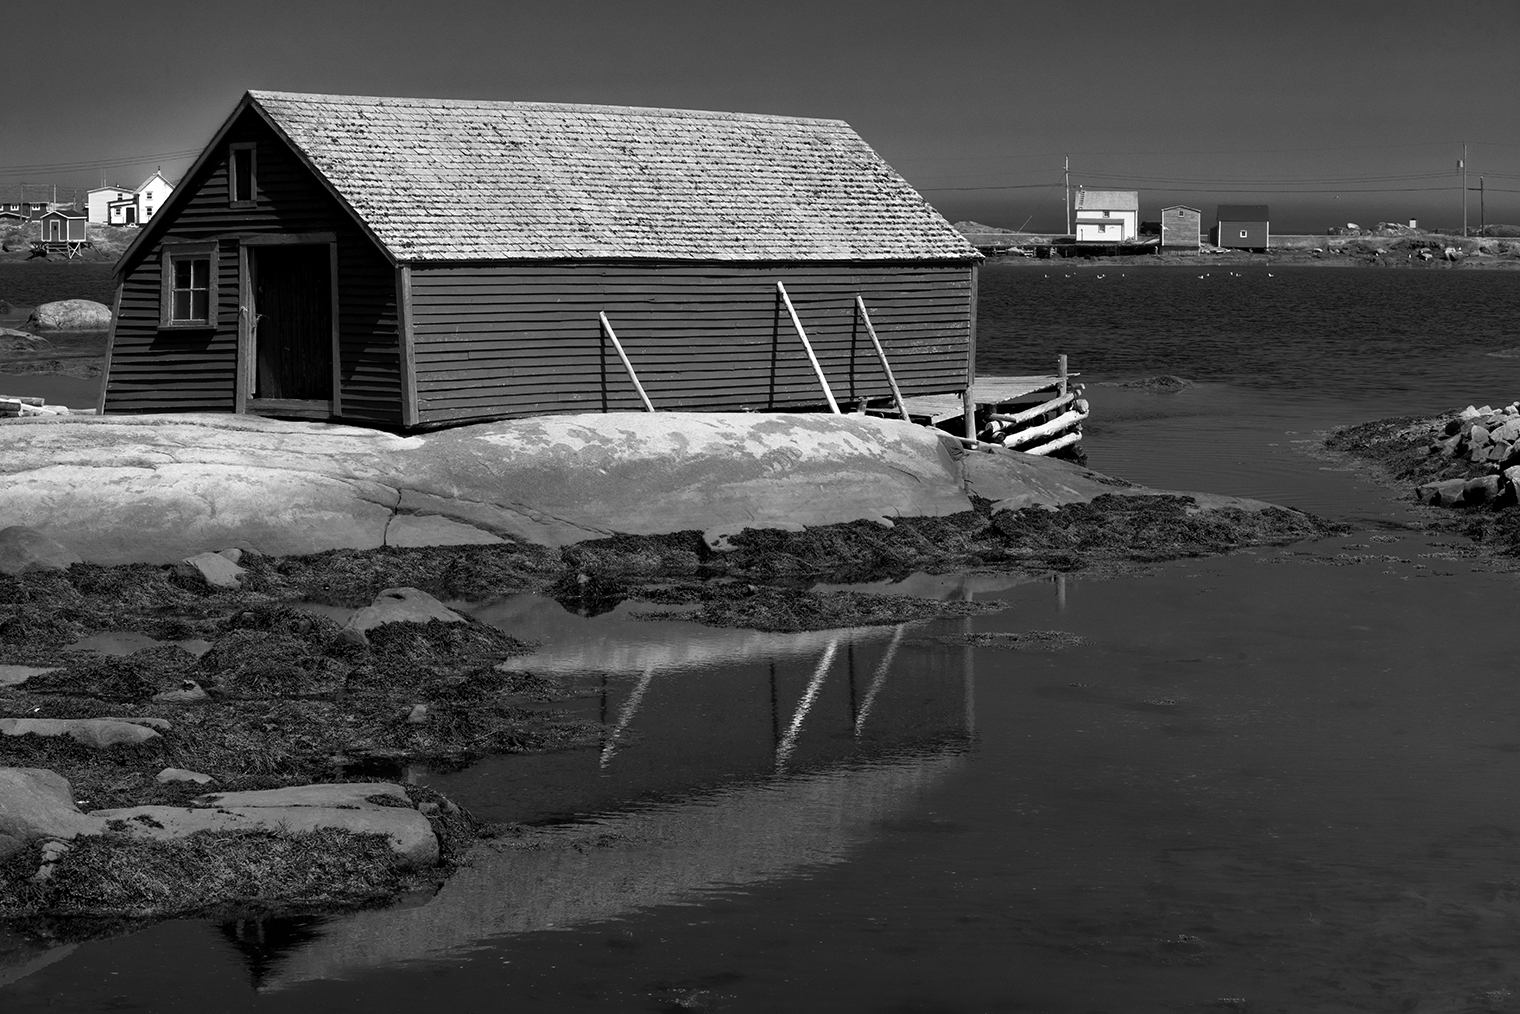 Newfoundland, CanadaImage no: 19-007418-bw  Click HERE to Add to Cart